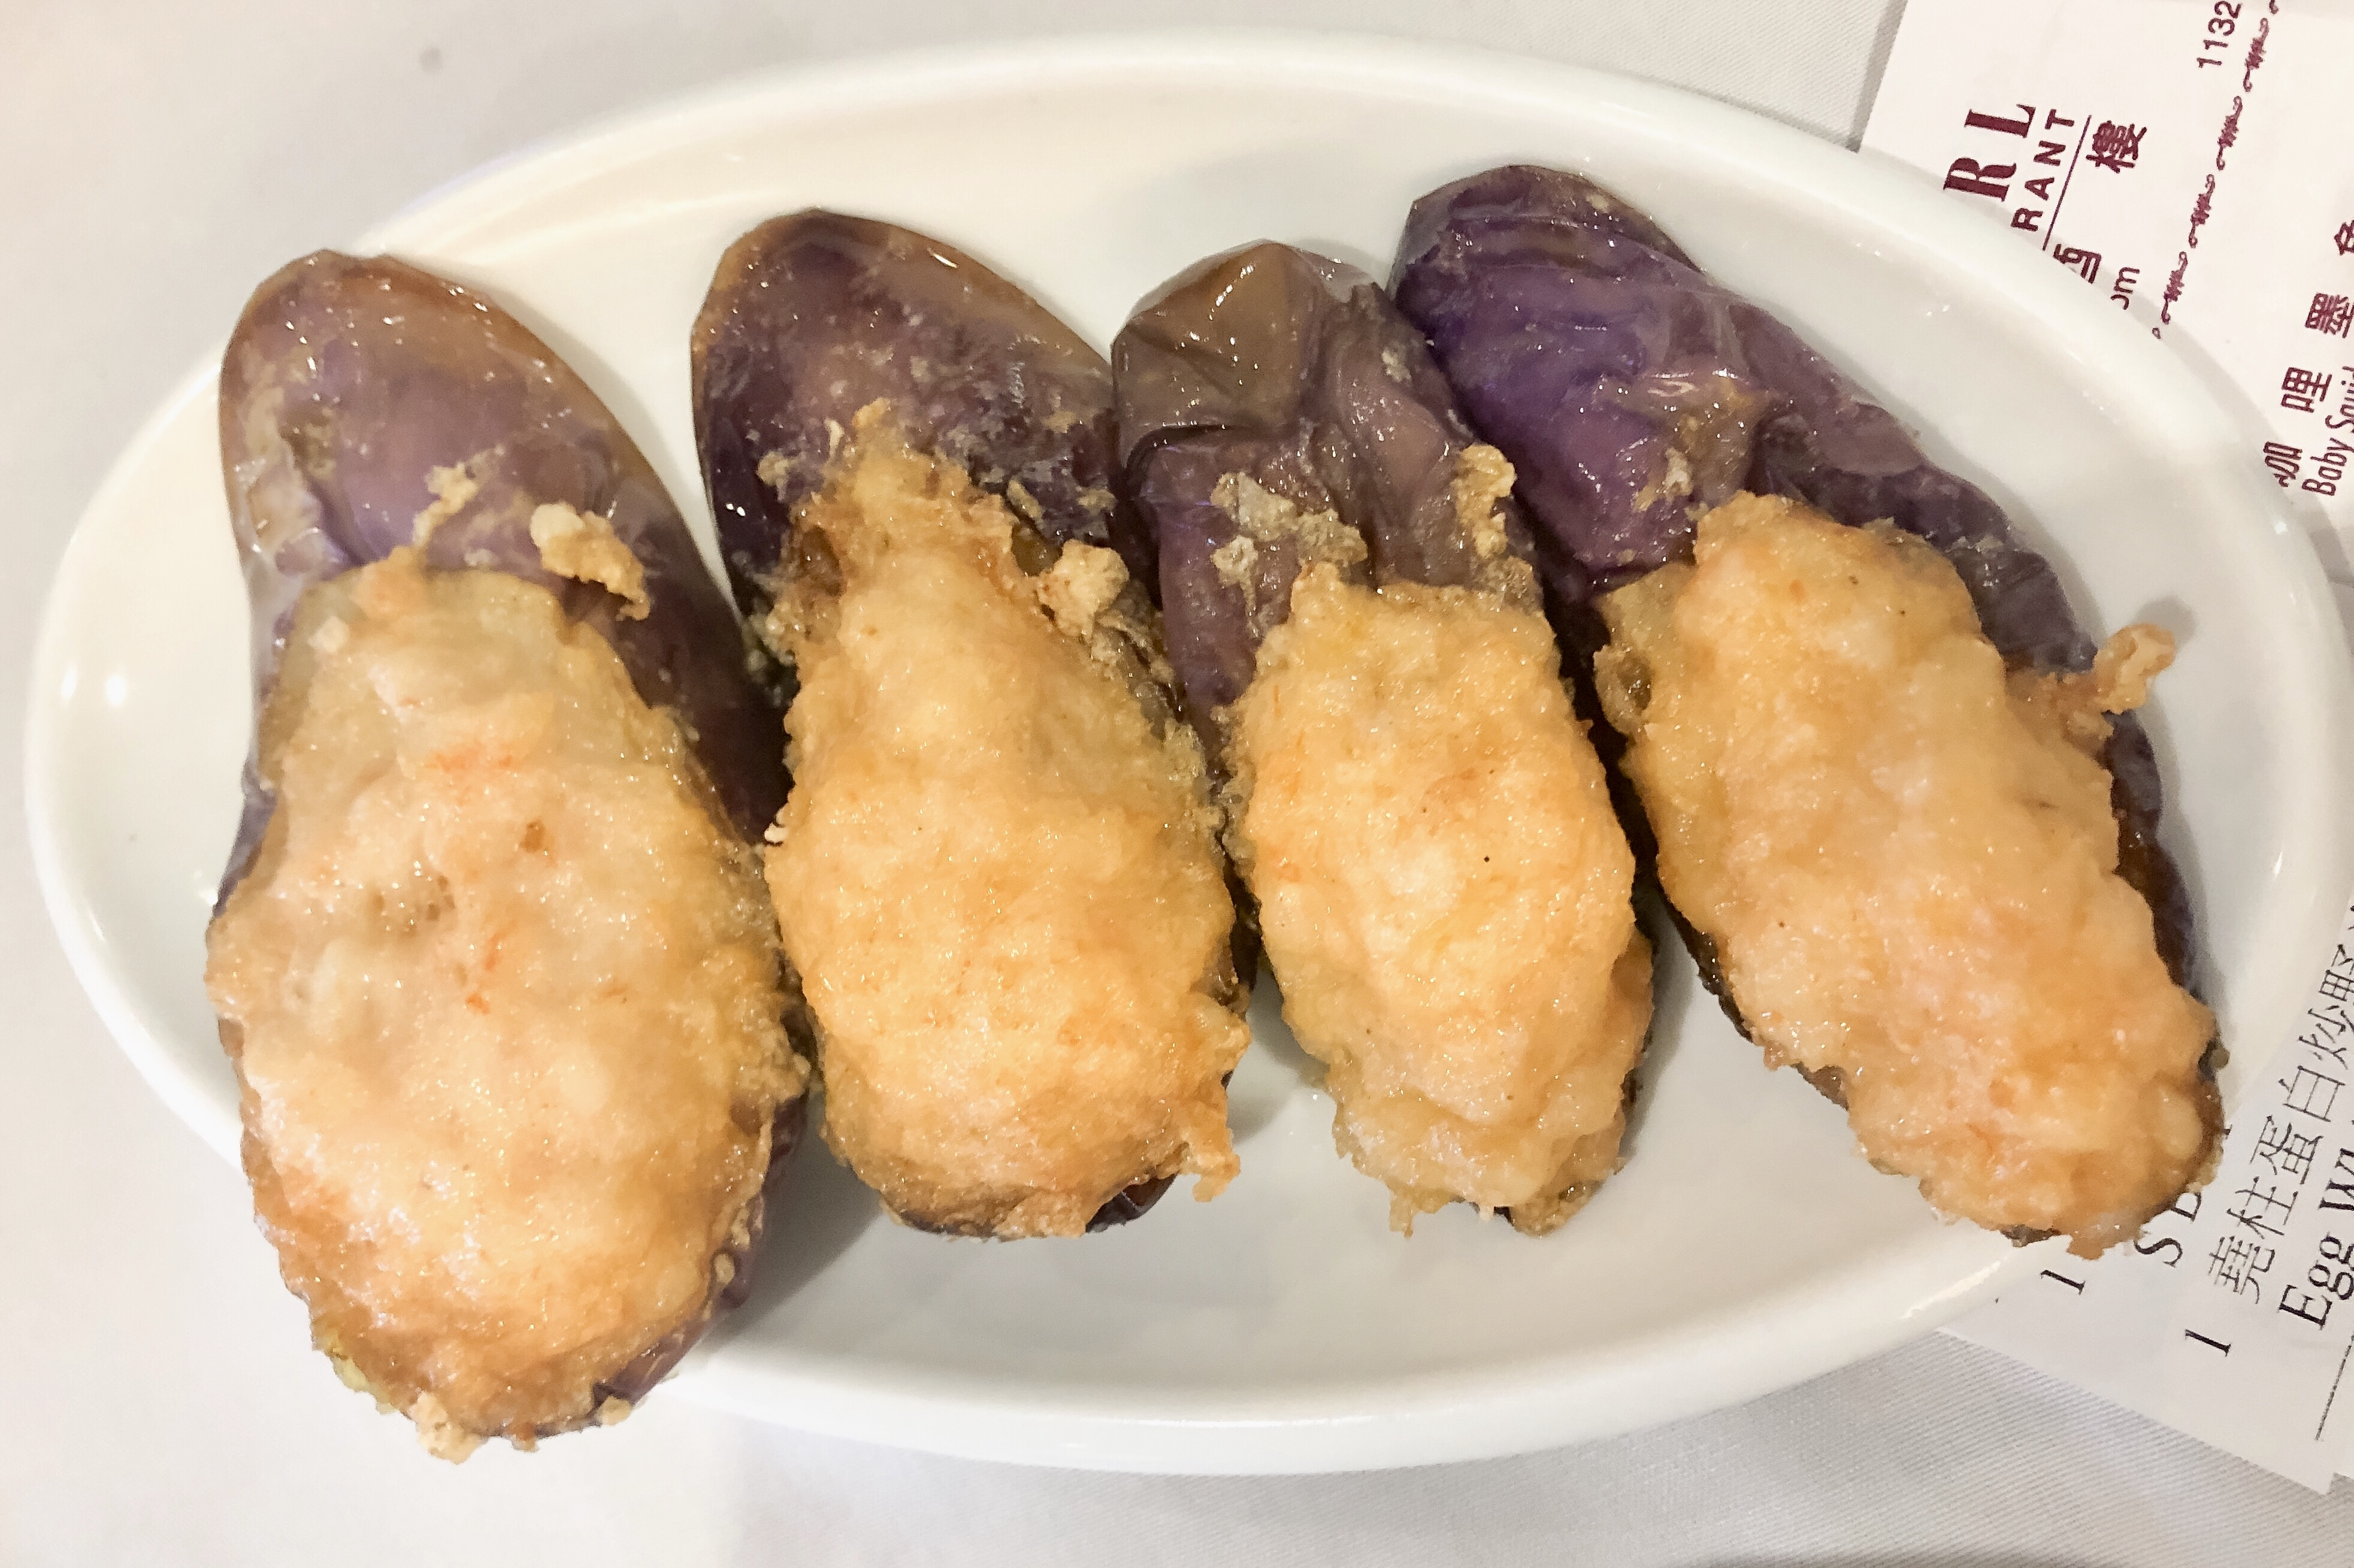 Stuffed Eggplant with Shrimp Paste